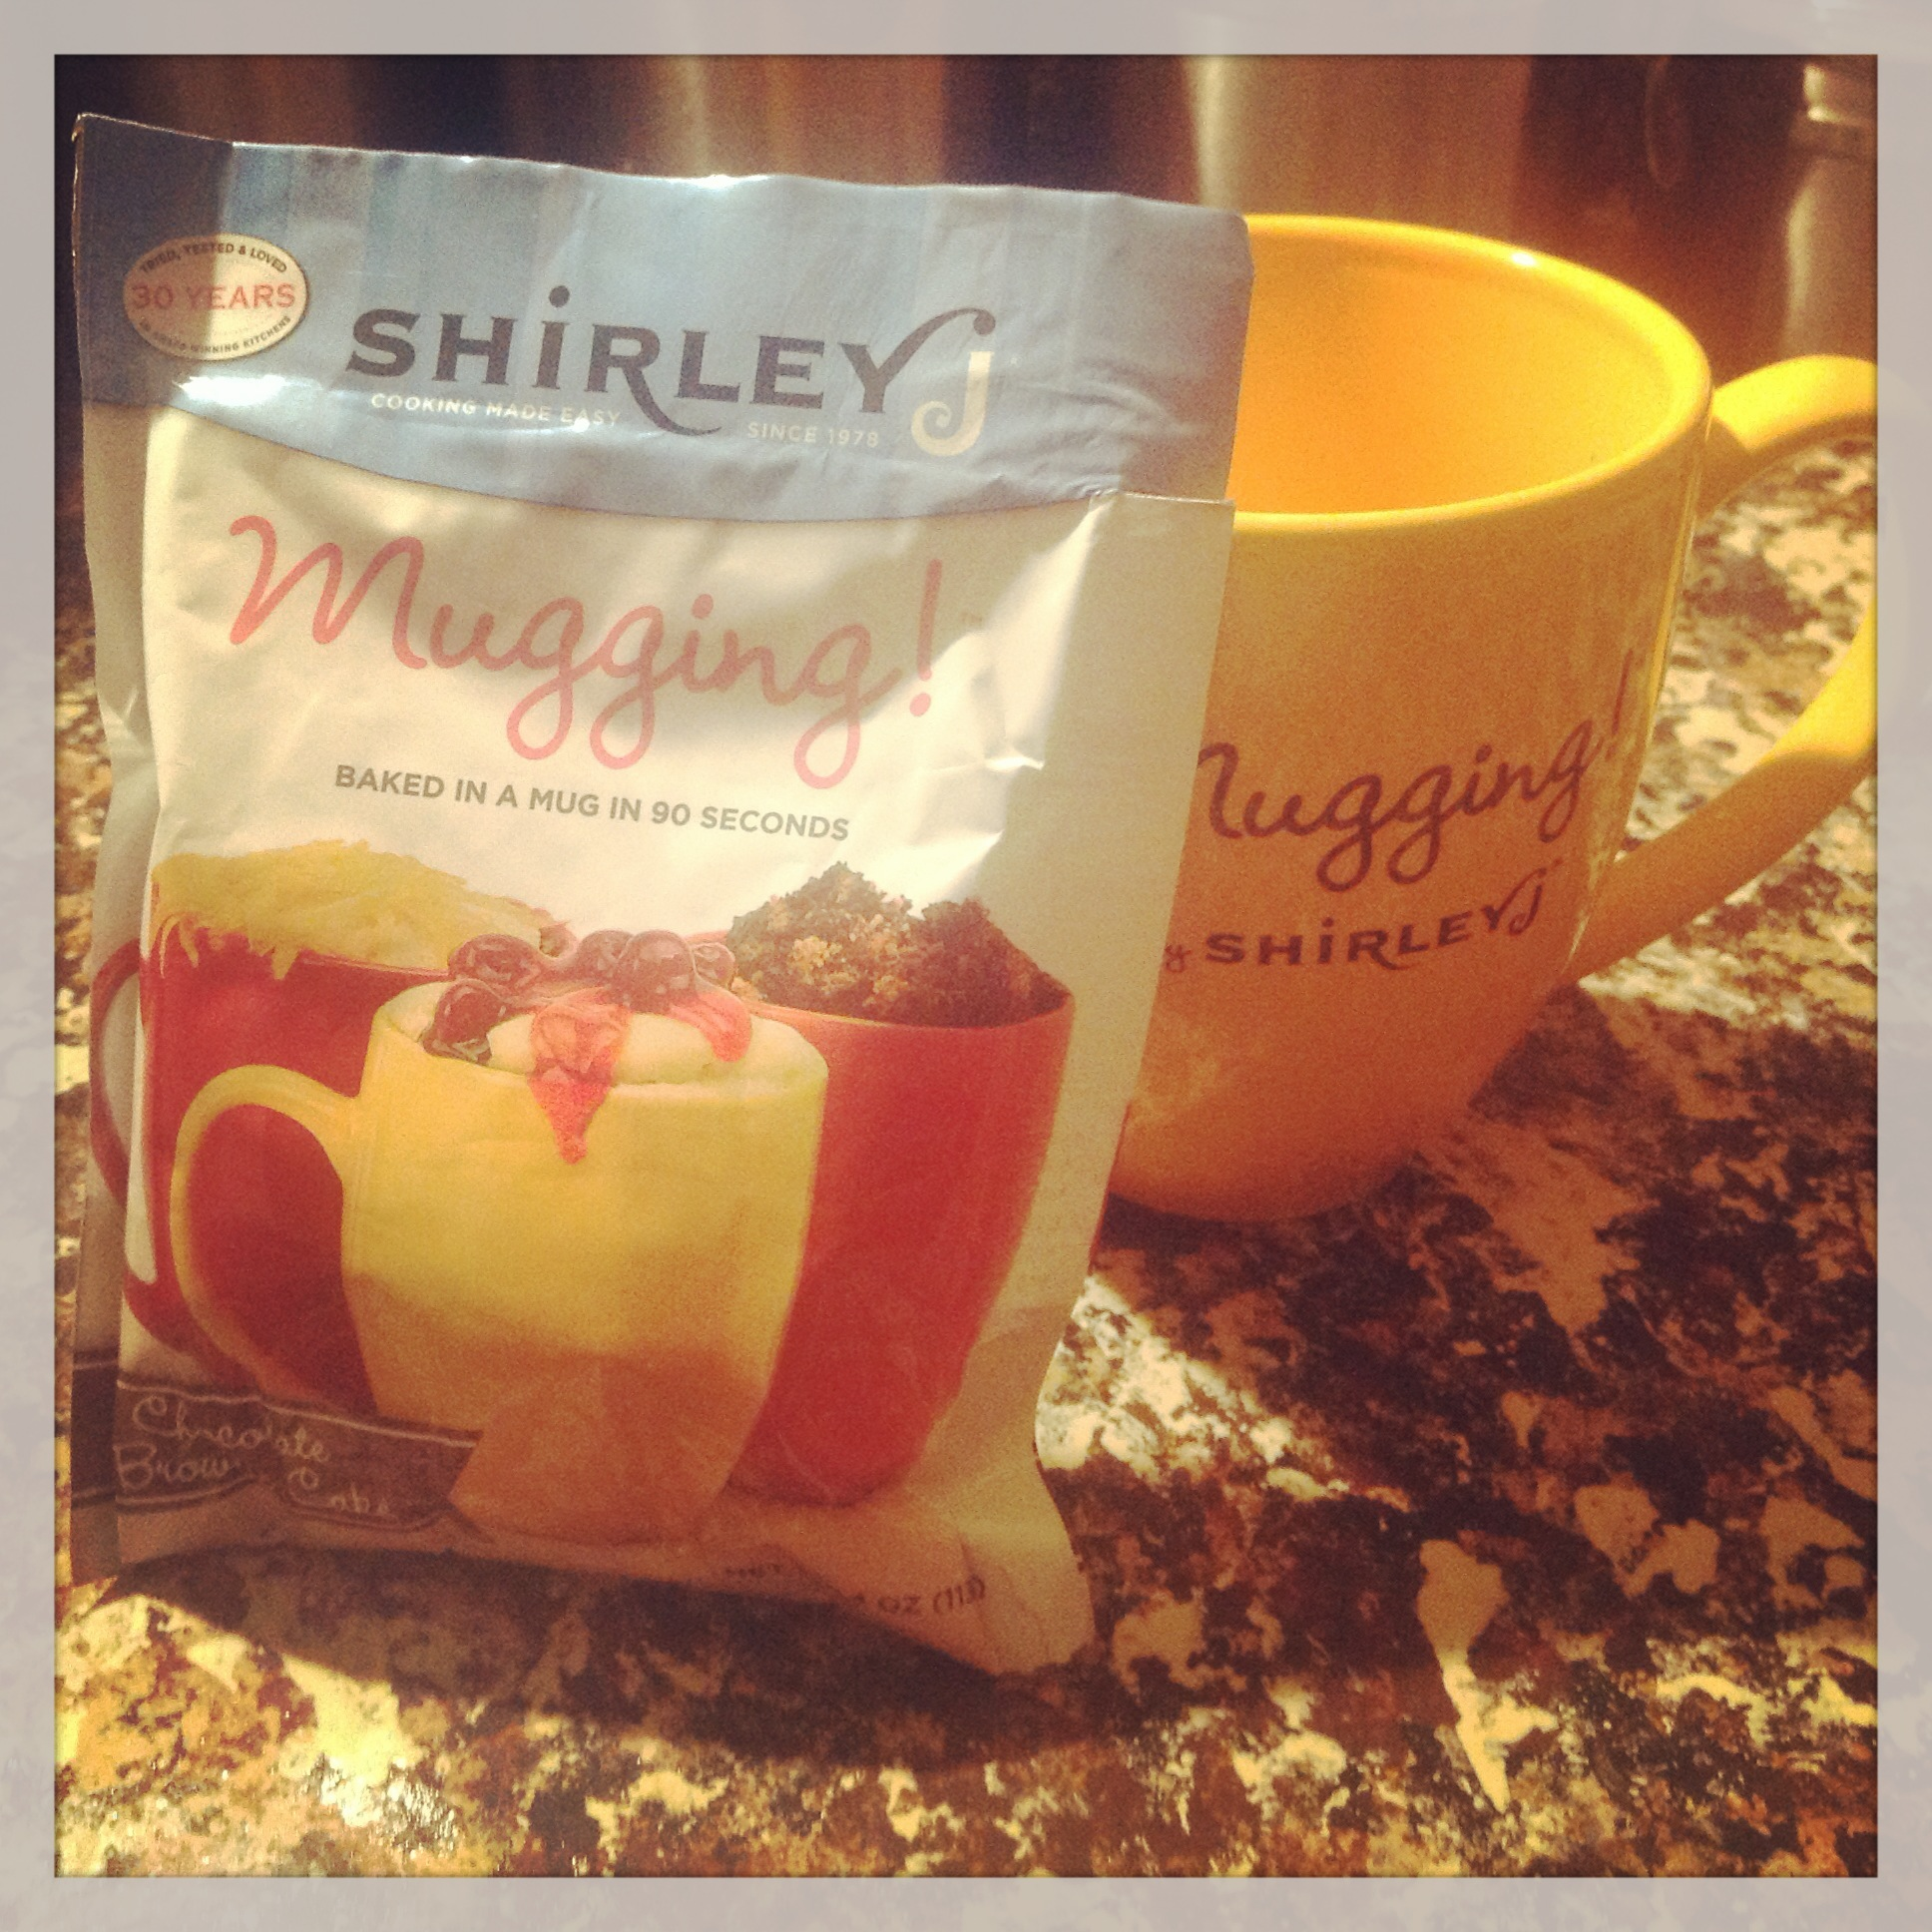 Shirley J Mugging Review